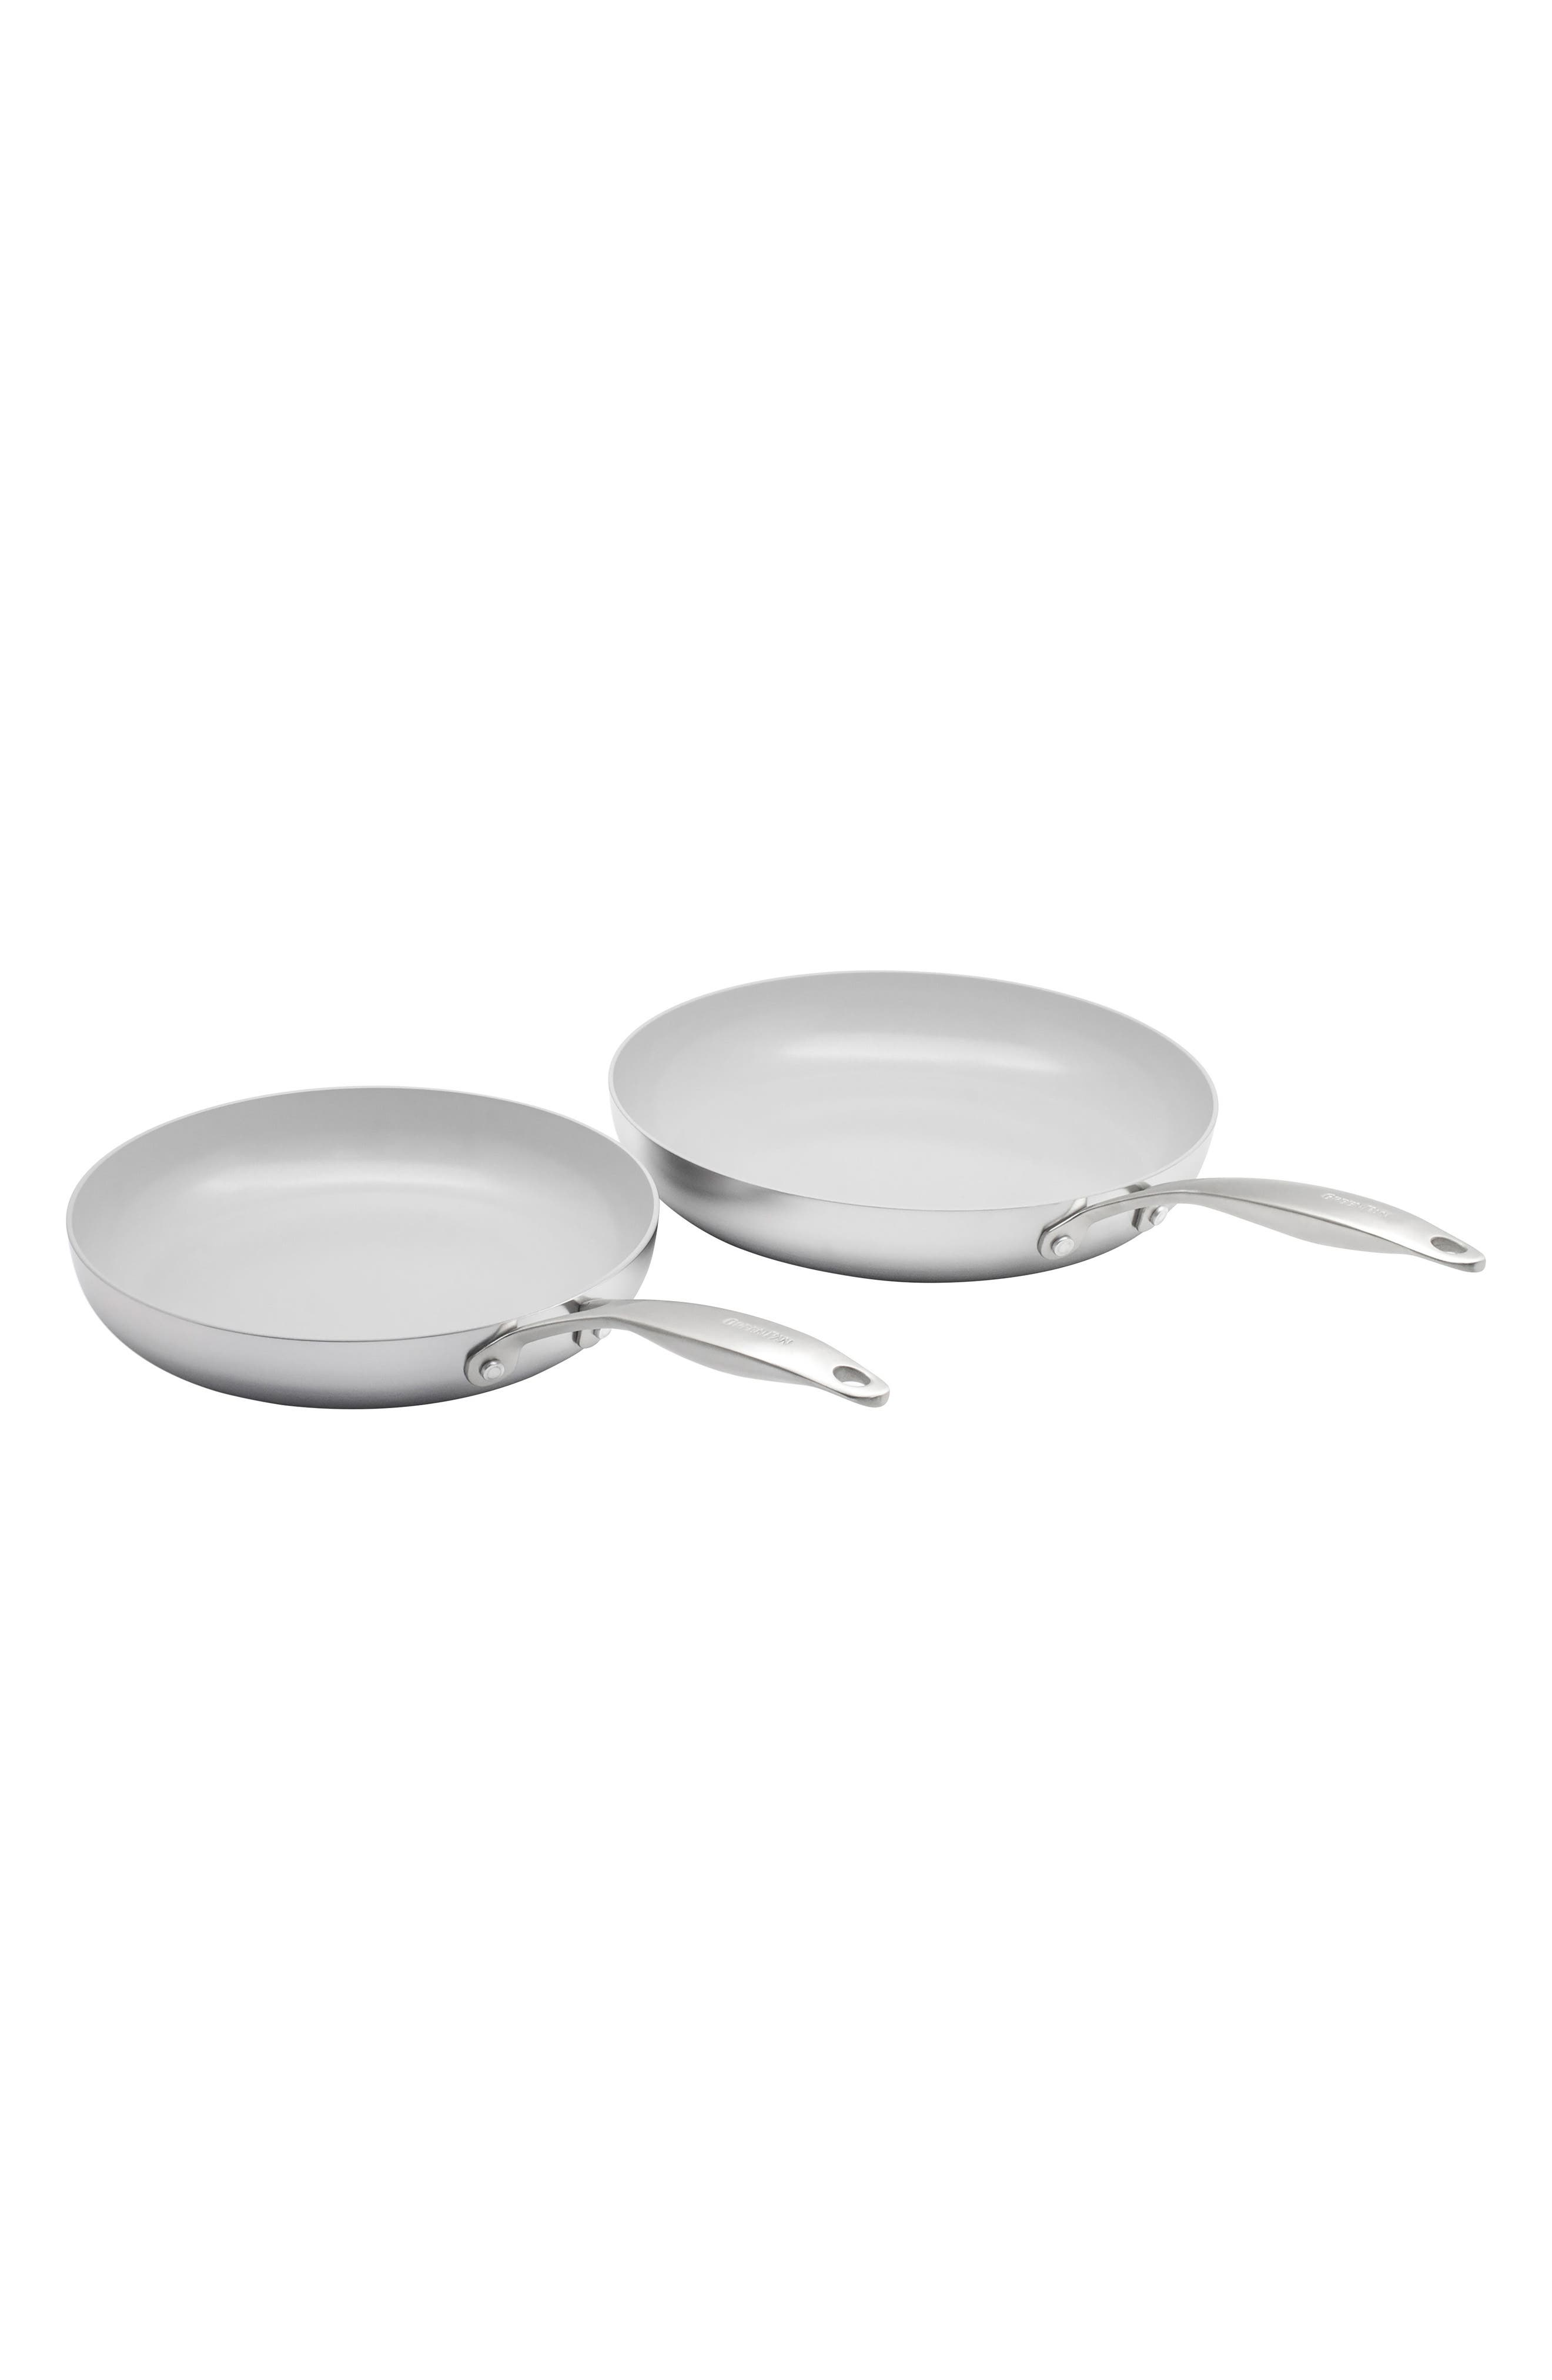 Main Image - GreenPan Venice Pro 10-Inch & 12-Inch Multilayer Stainless Steel Ceramic Nonstick Frying Pan Set